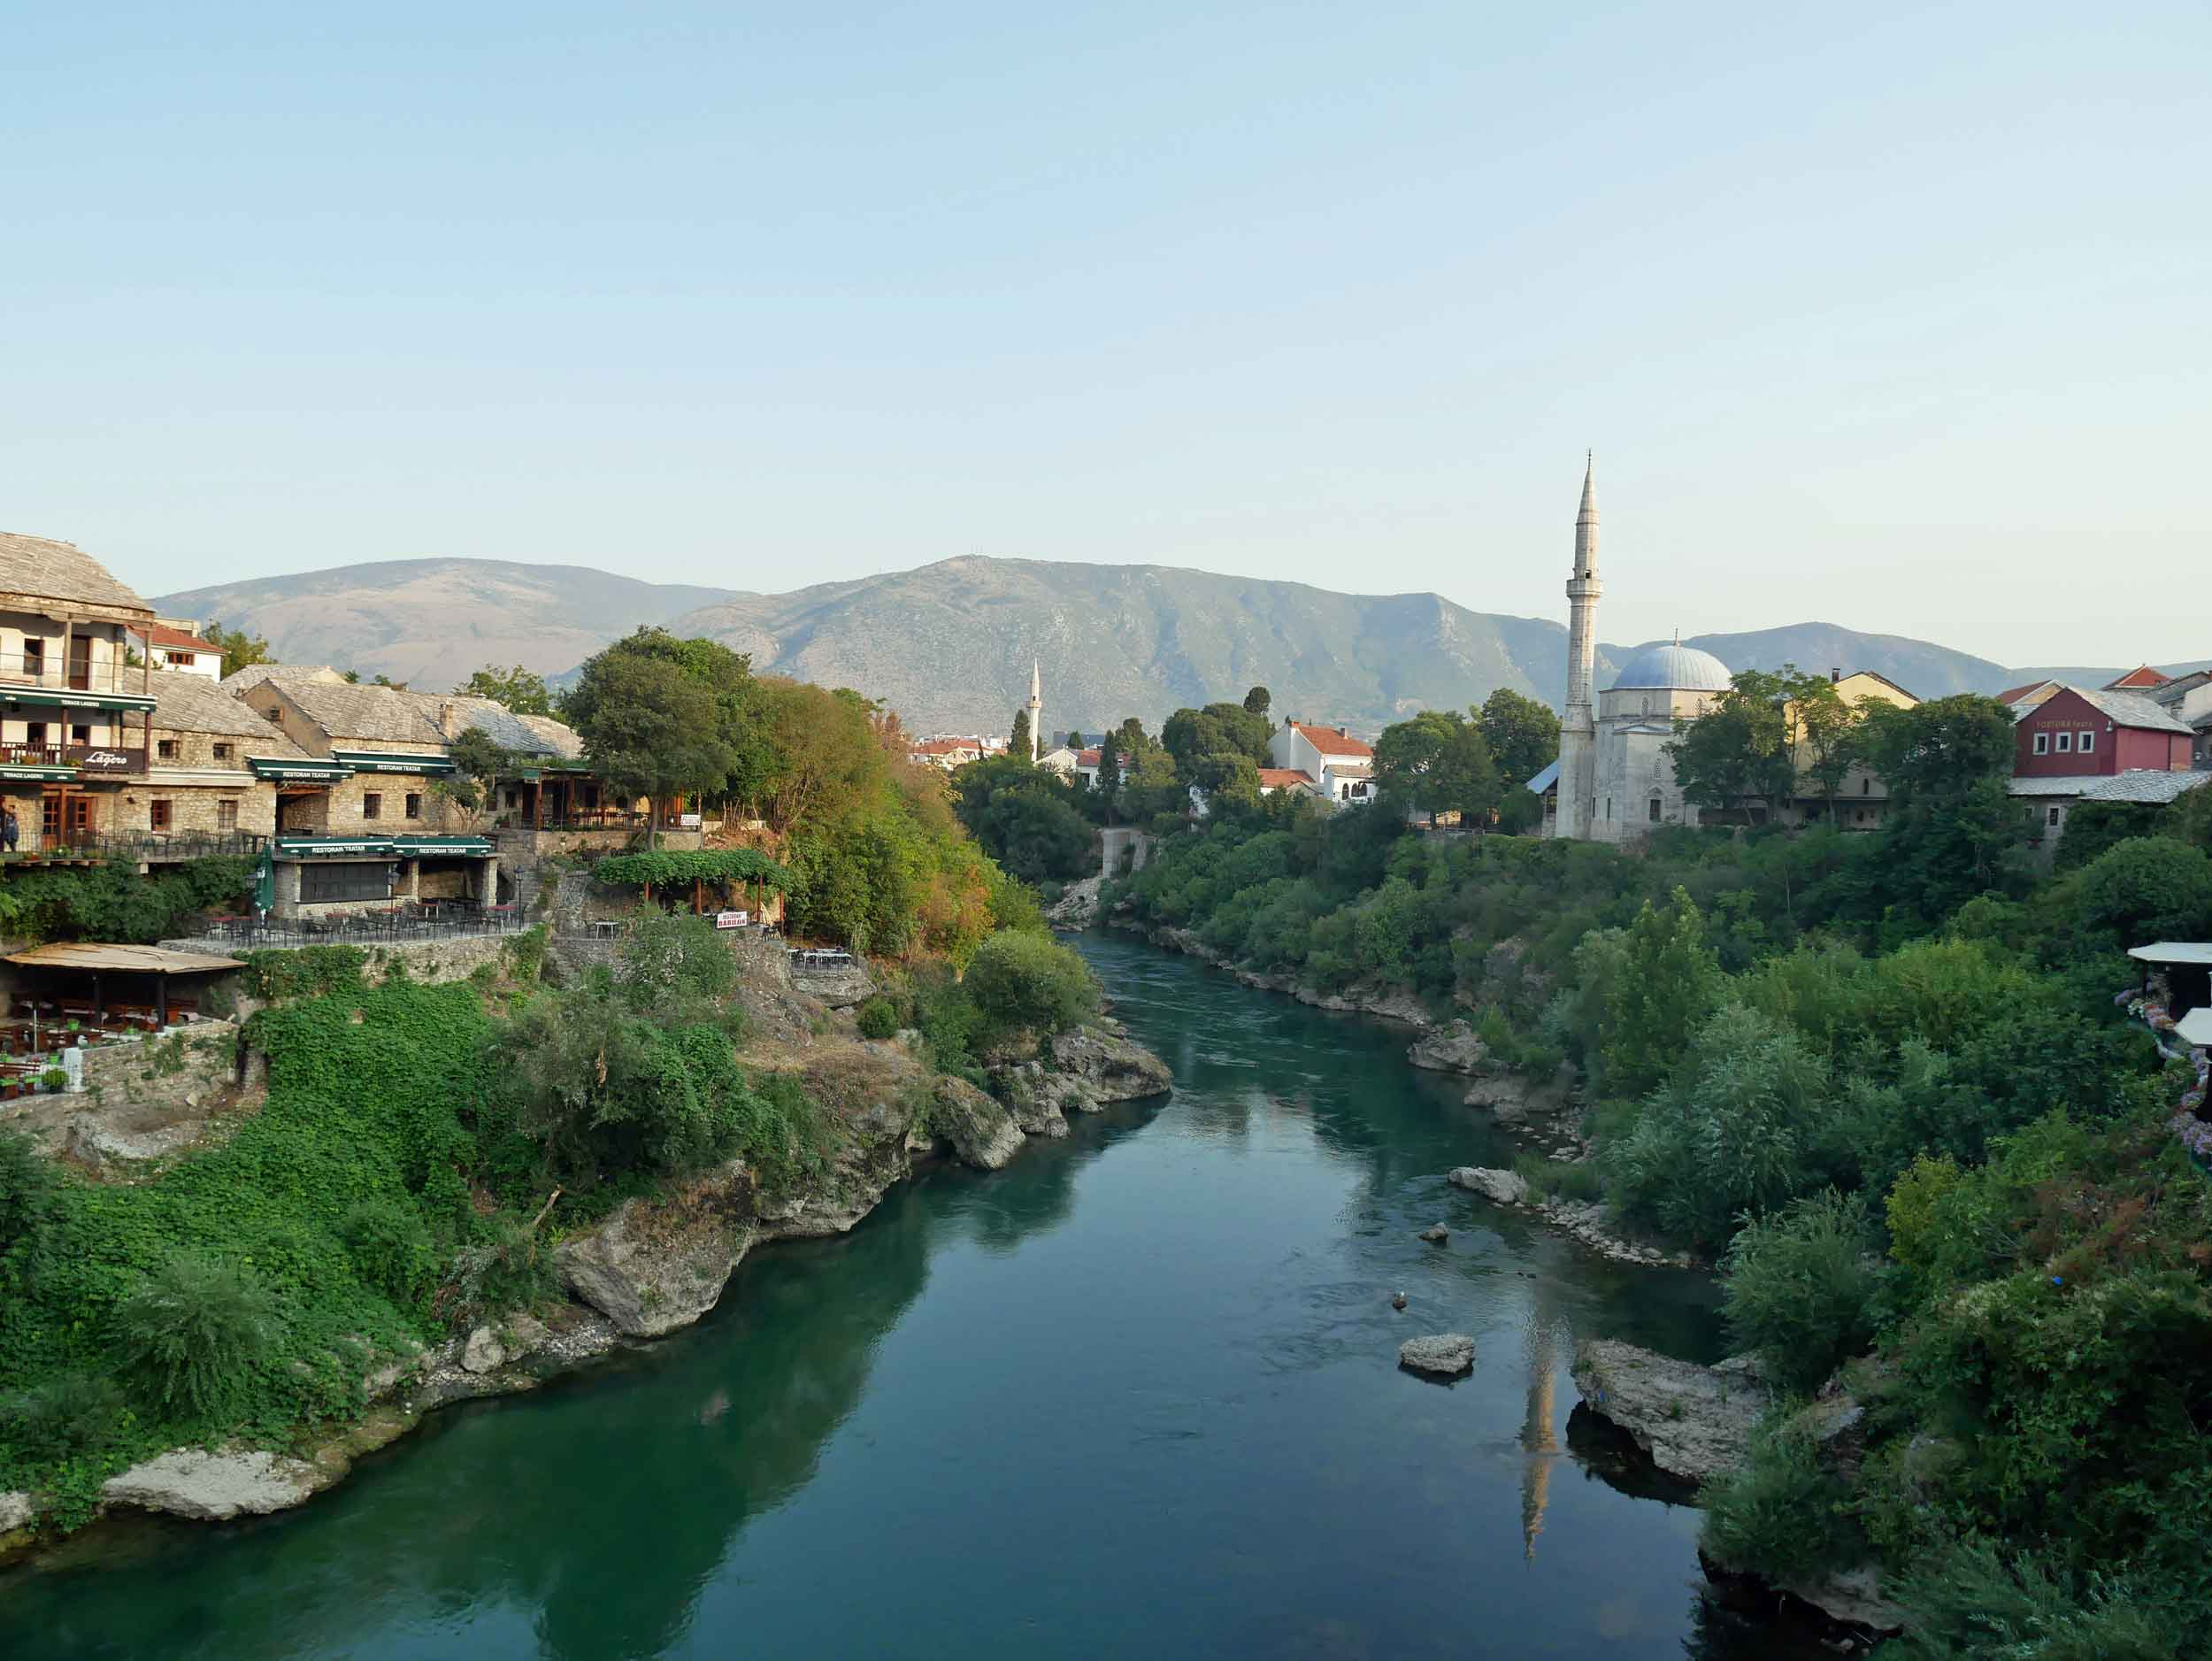 After our island holiday, we arrived to picturesque Mostar in the country's southern Herzegovina region (Aug 4).